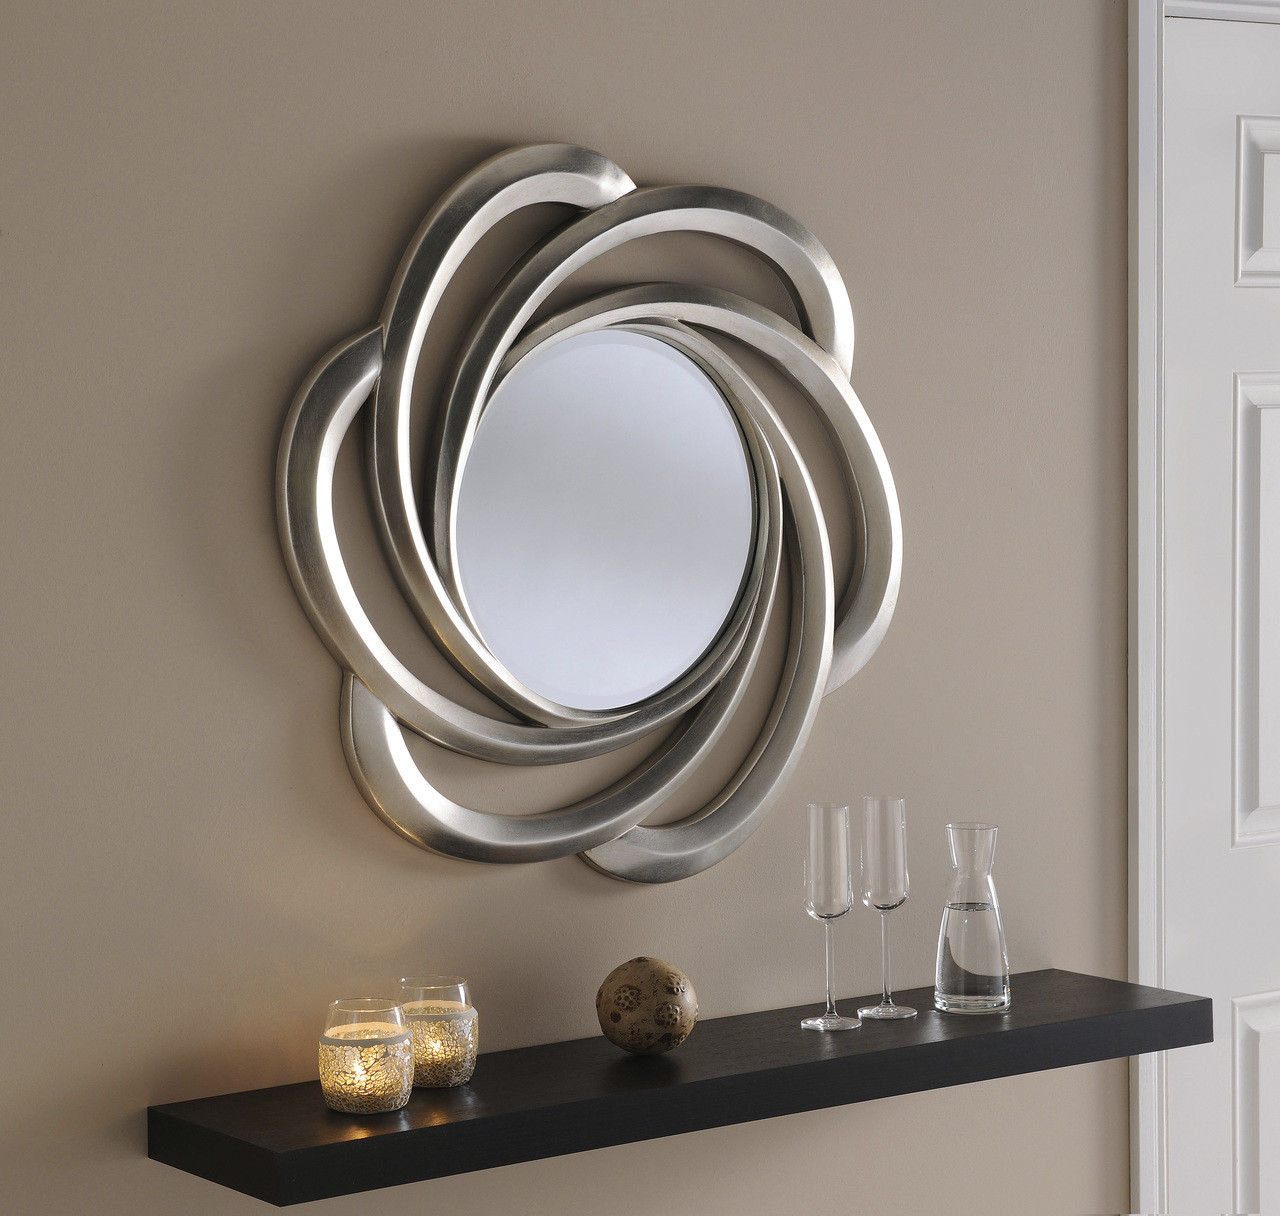 Turin Large Round New Wall Mirror Silver Swirl Frame Art